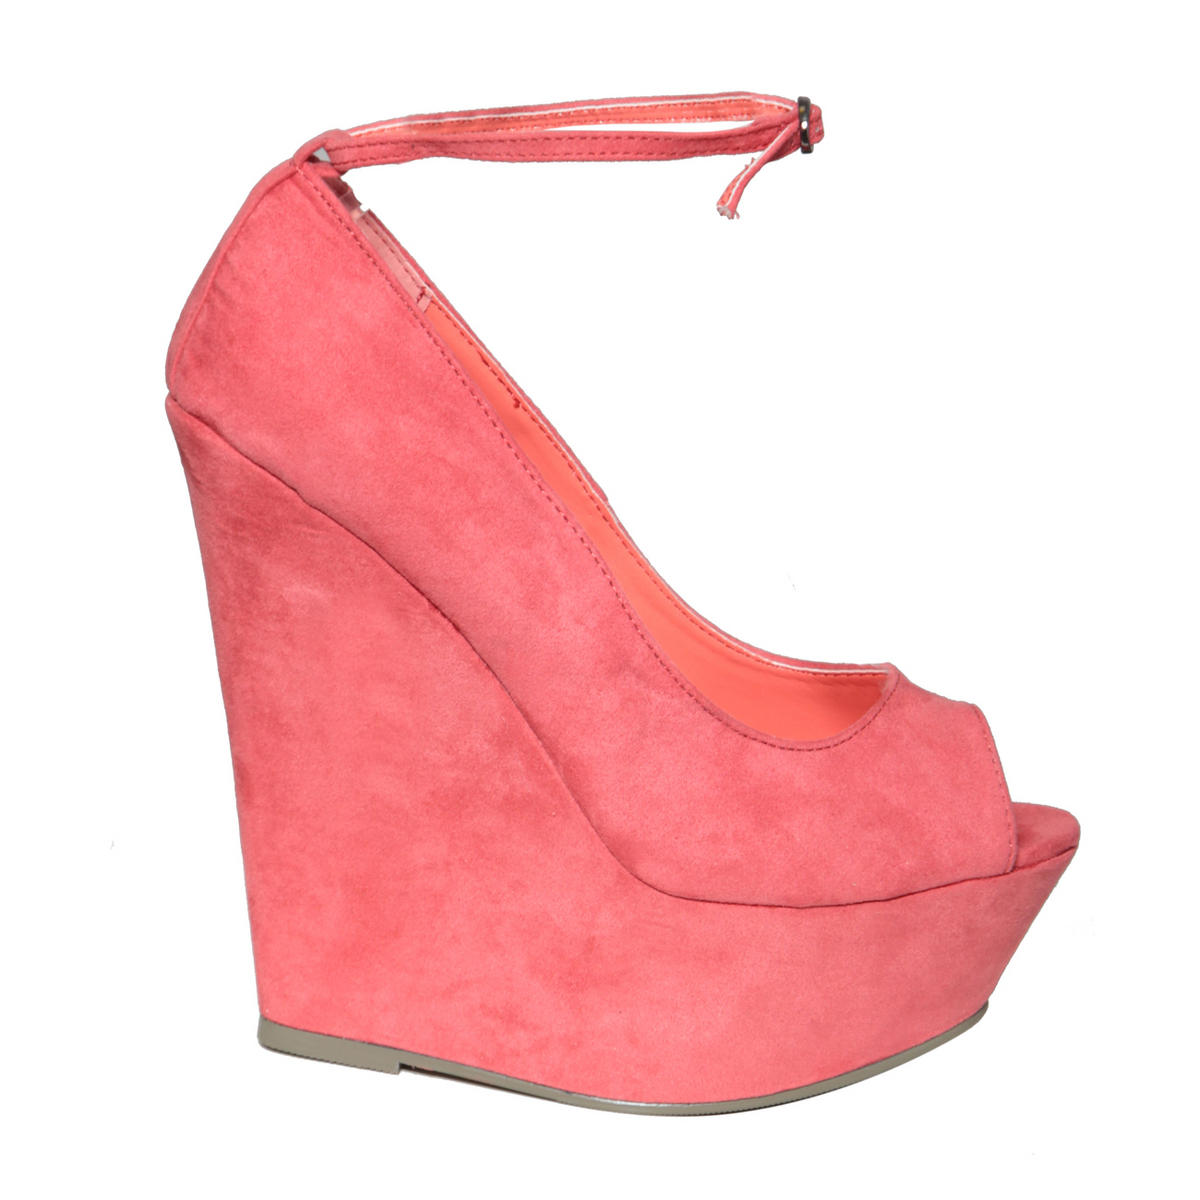 Coral Peeptoe Wedge Shoe Preview